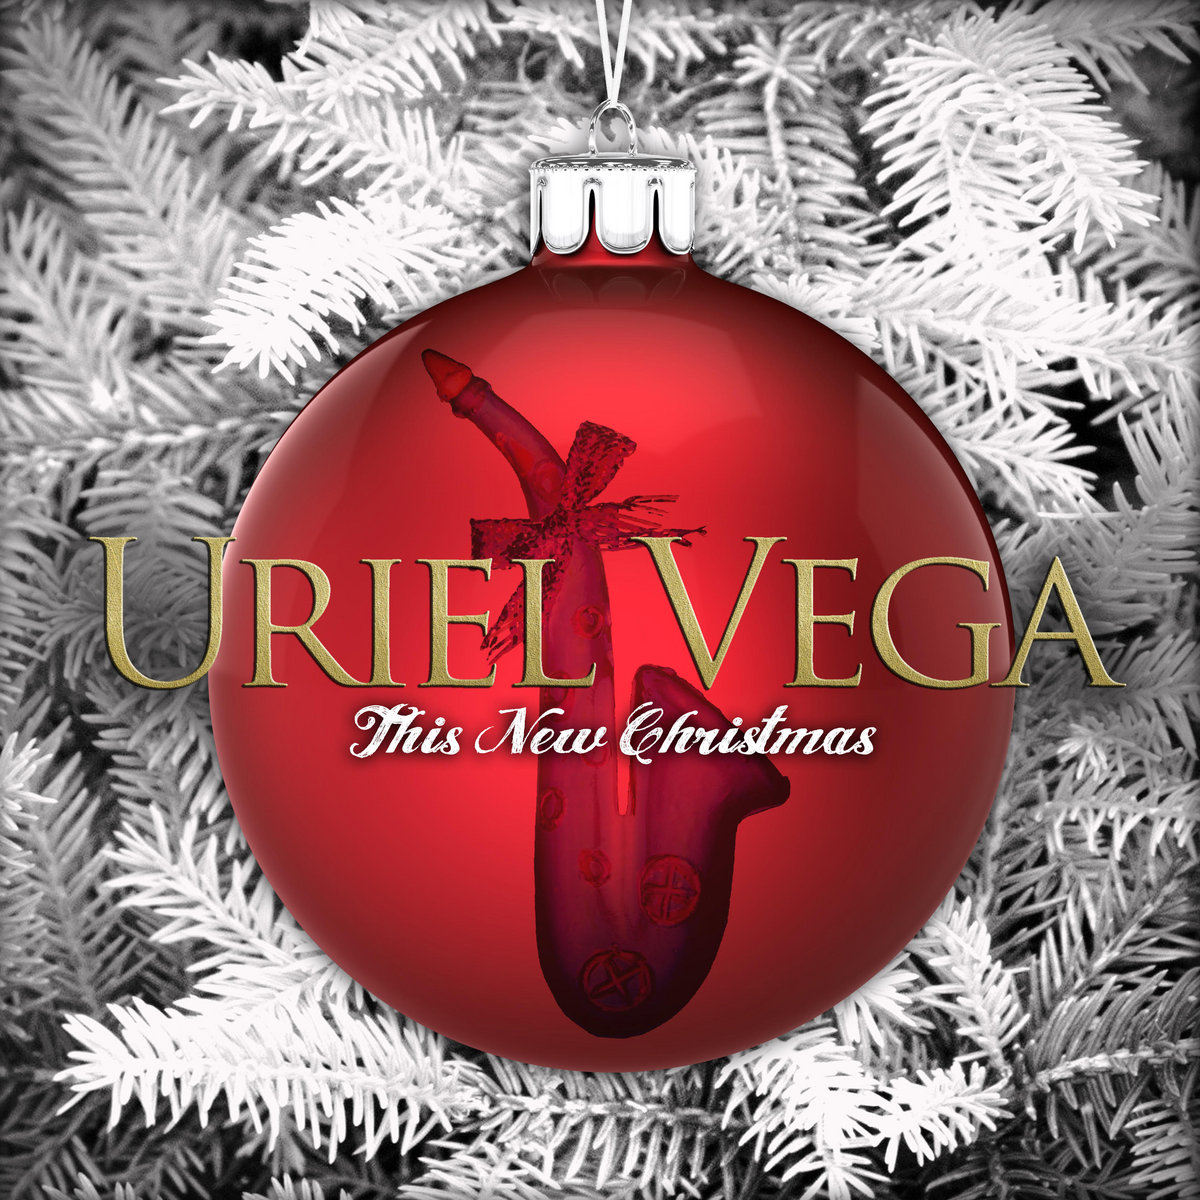 Includes unlimited streaming of This New Christmas via the free Bandcamp app, plus high-quality download in MP3, FLAC and more.